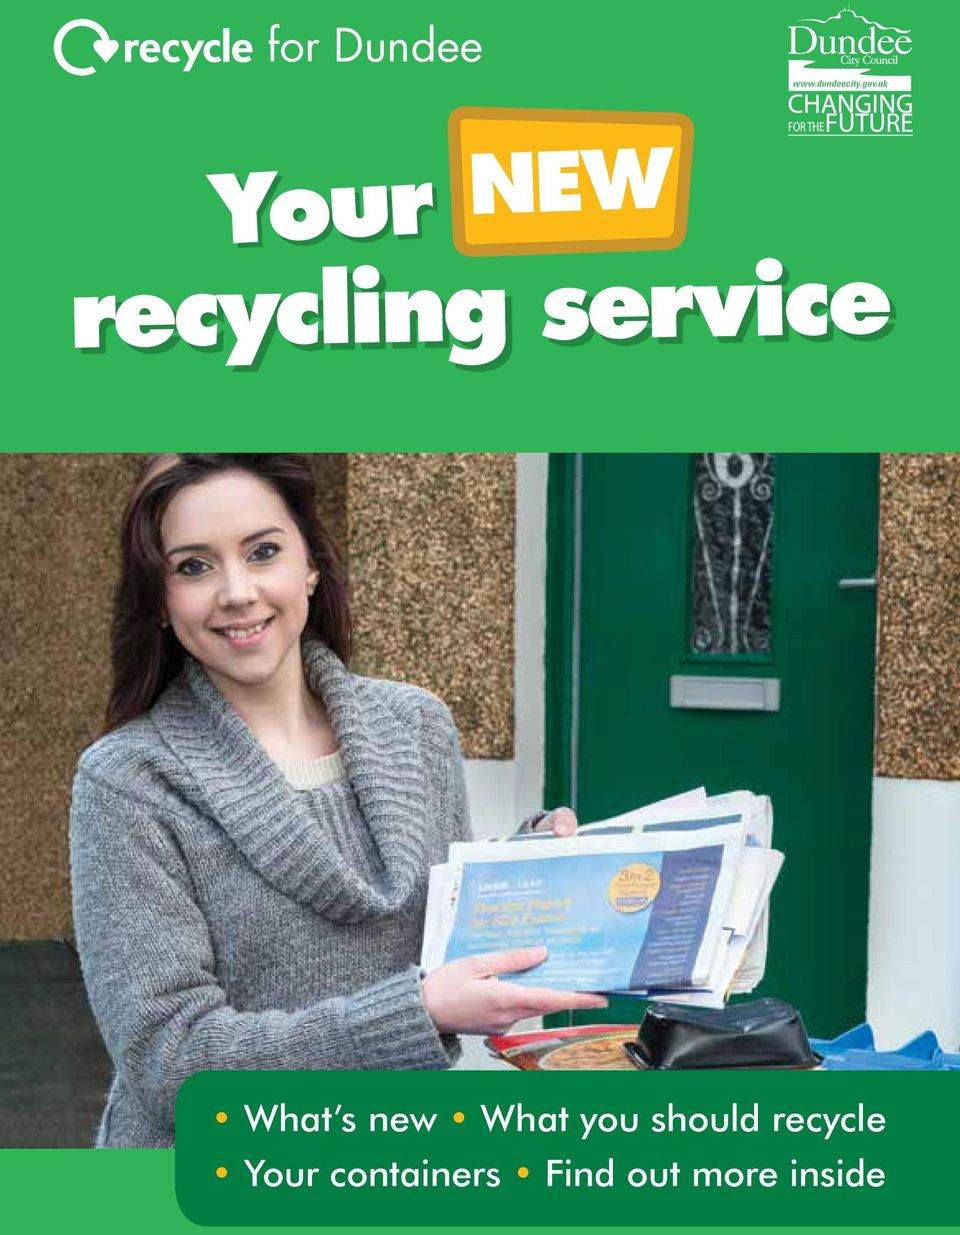 new What you should recycle